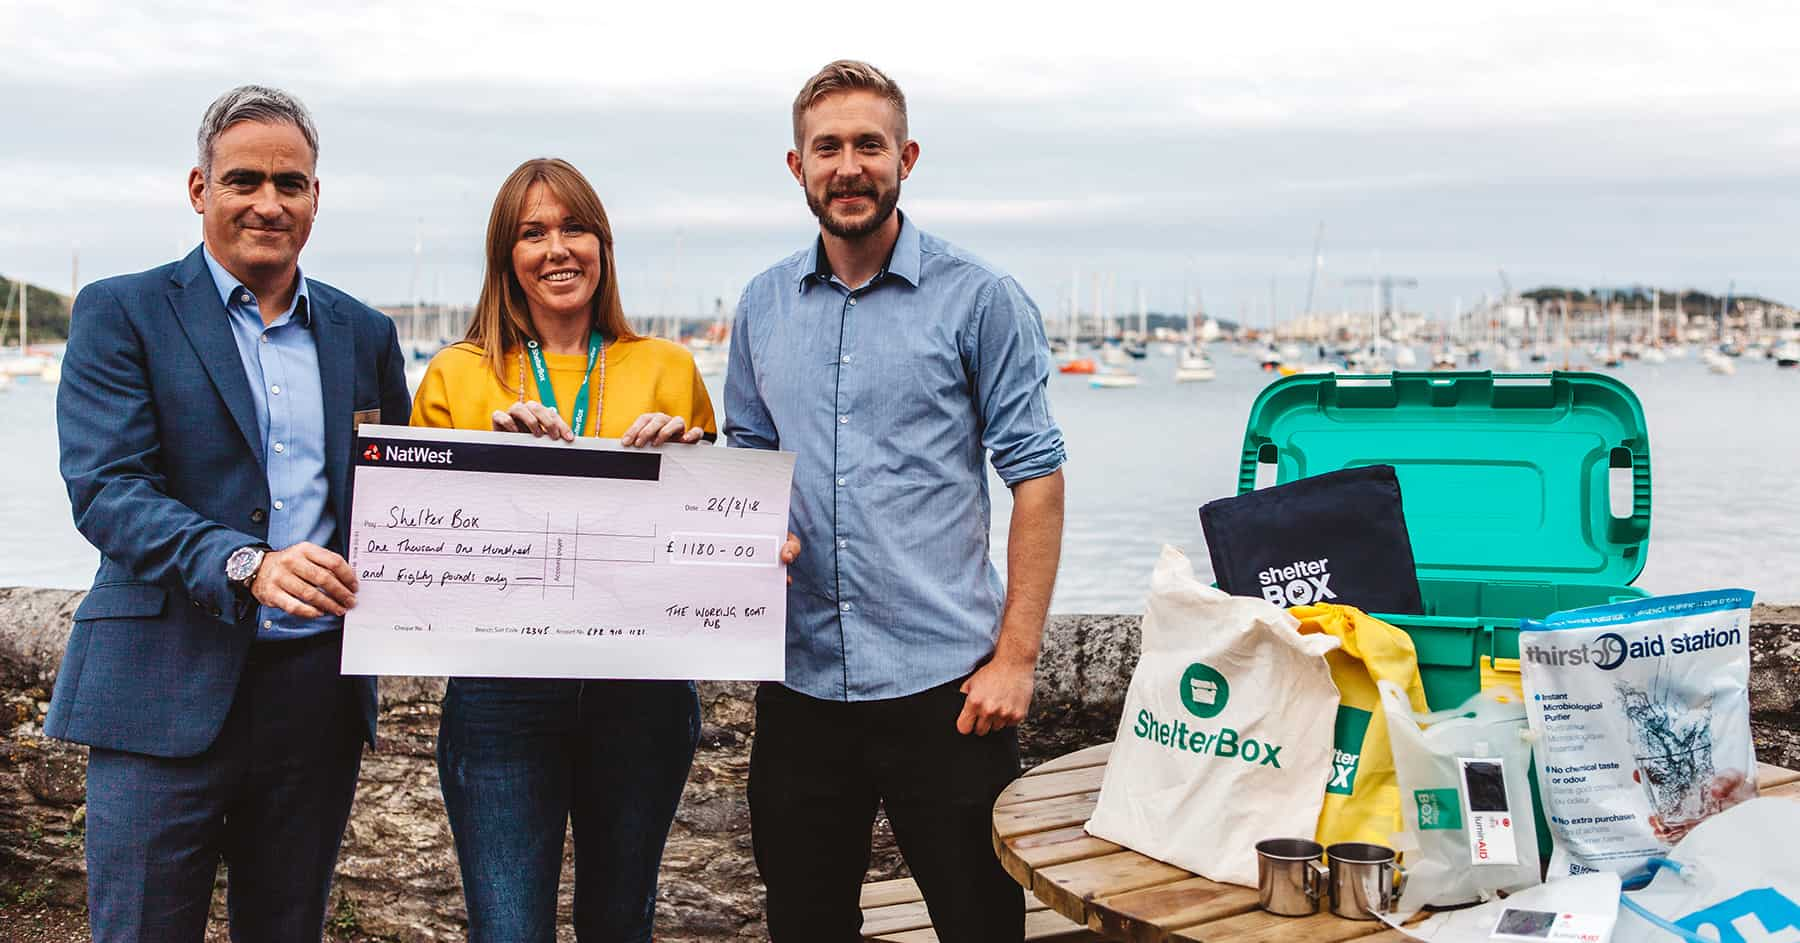 the-working-boat-pub-falmouth-shelterbox-donation-cornwall-pub-quiz